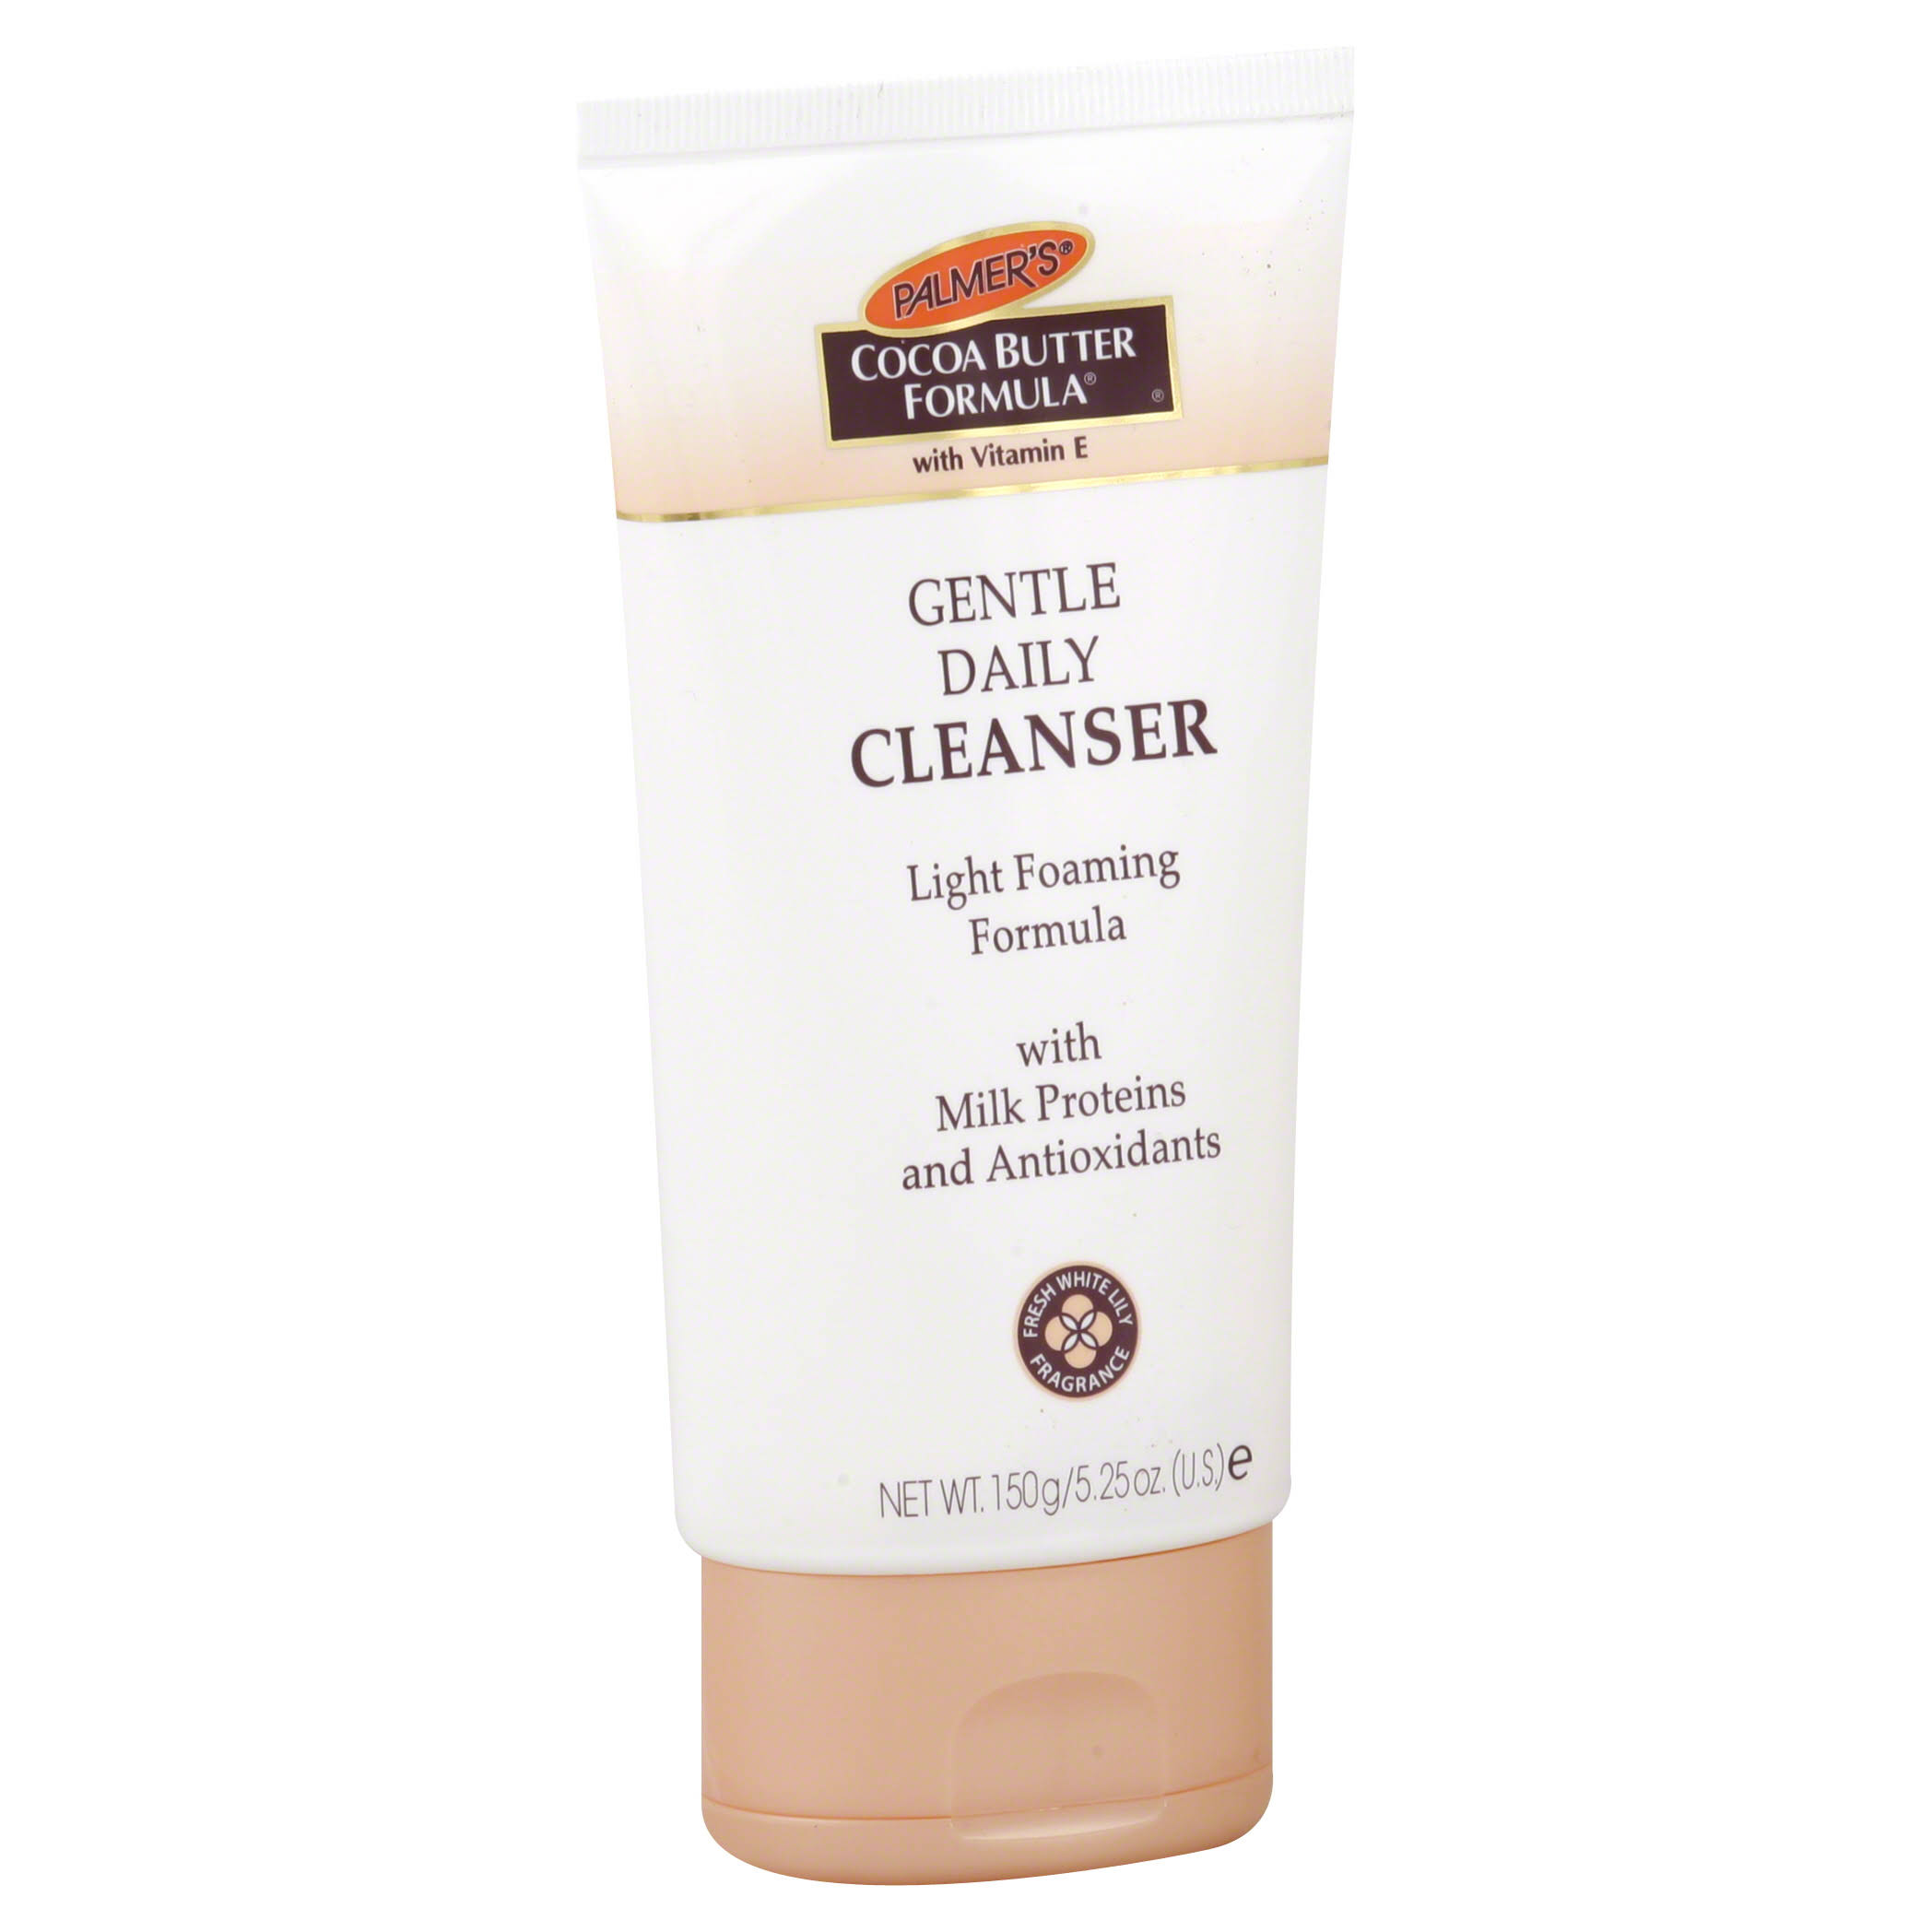 Palmer's Cocoa Butter Formula Gentle Daily Cleanser - 5.25oz